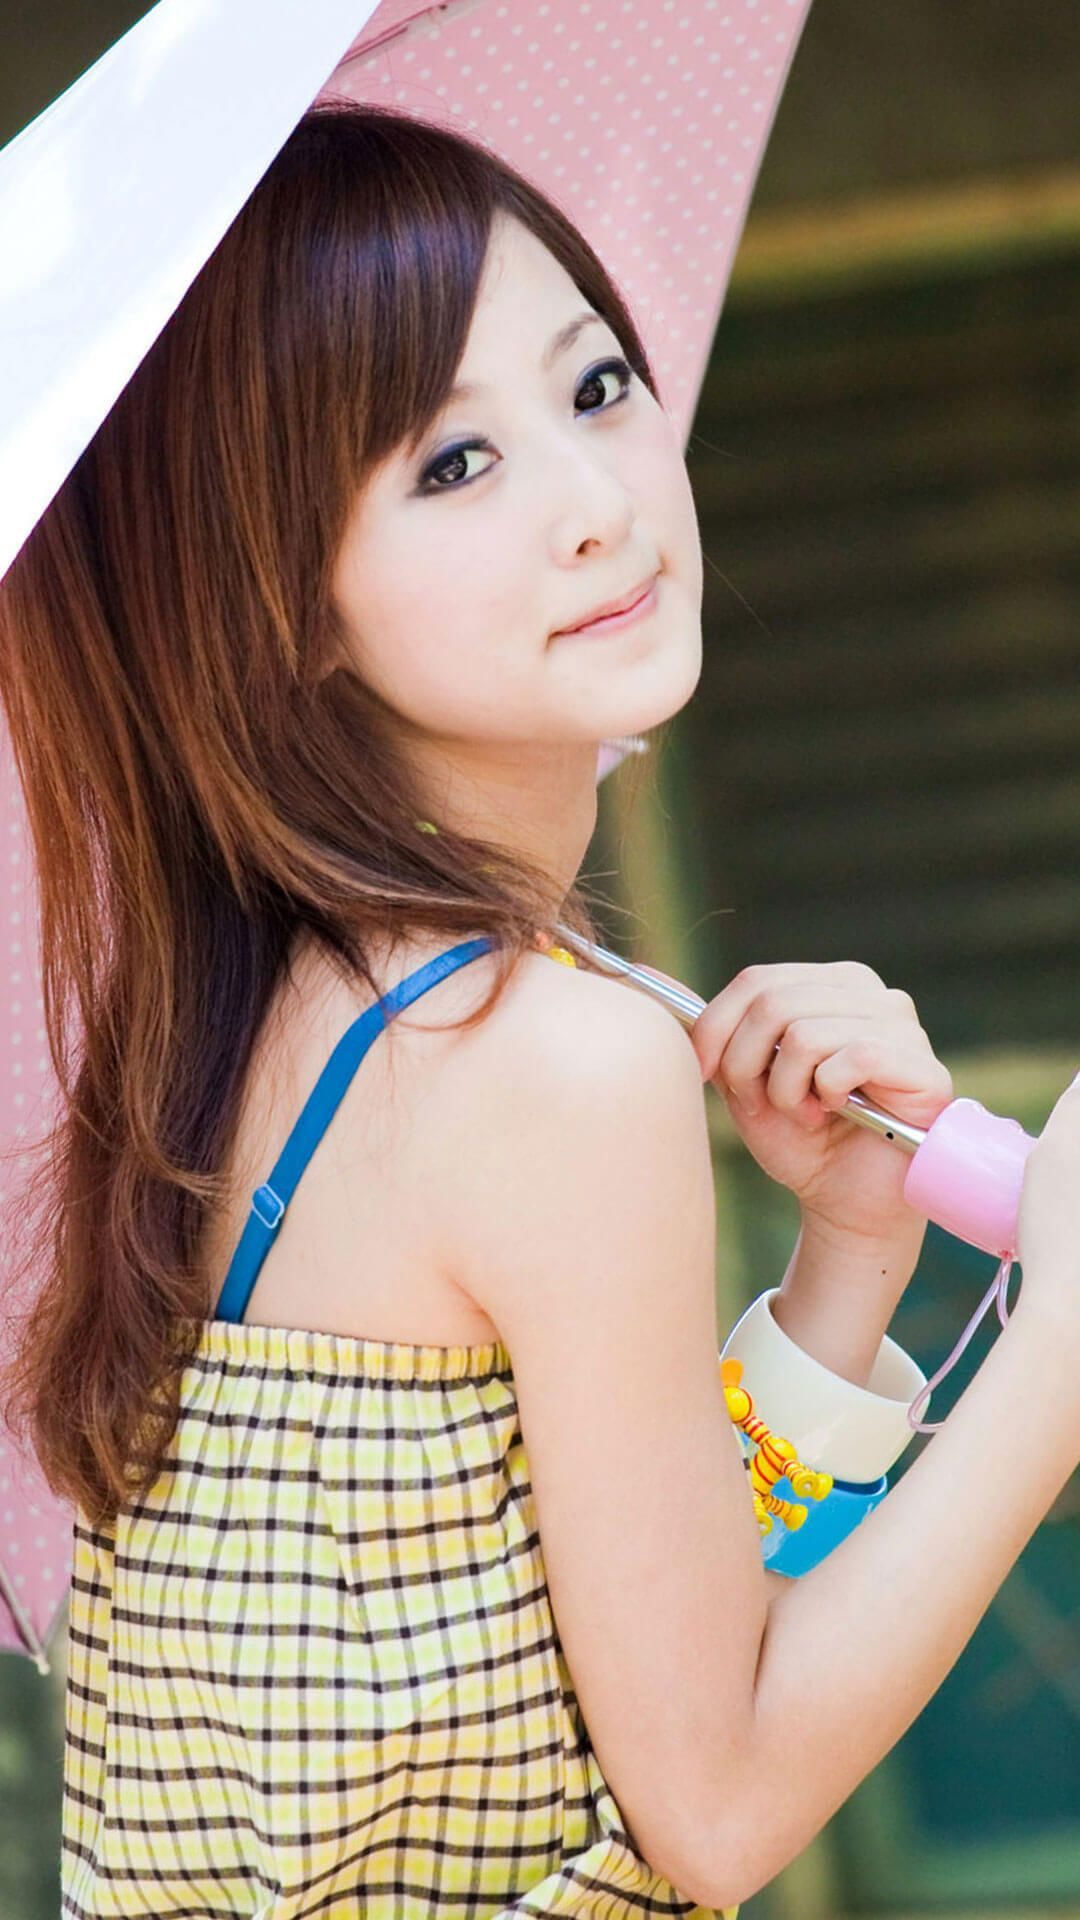 Pin on Cute Girl Wallpapers for iPhone